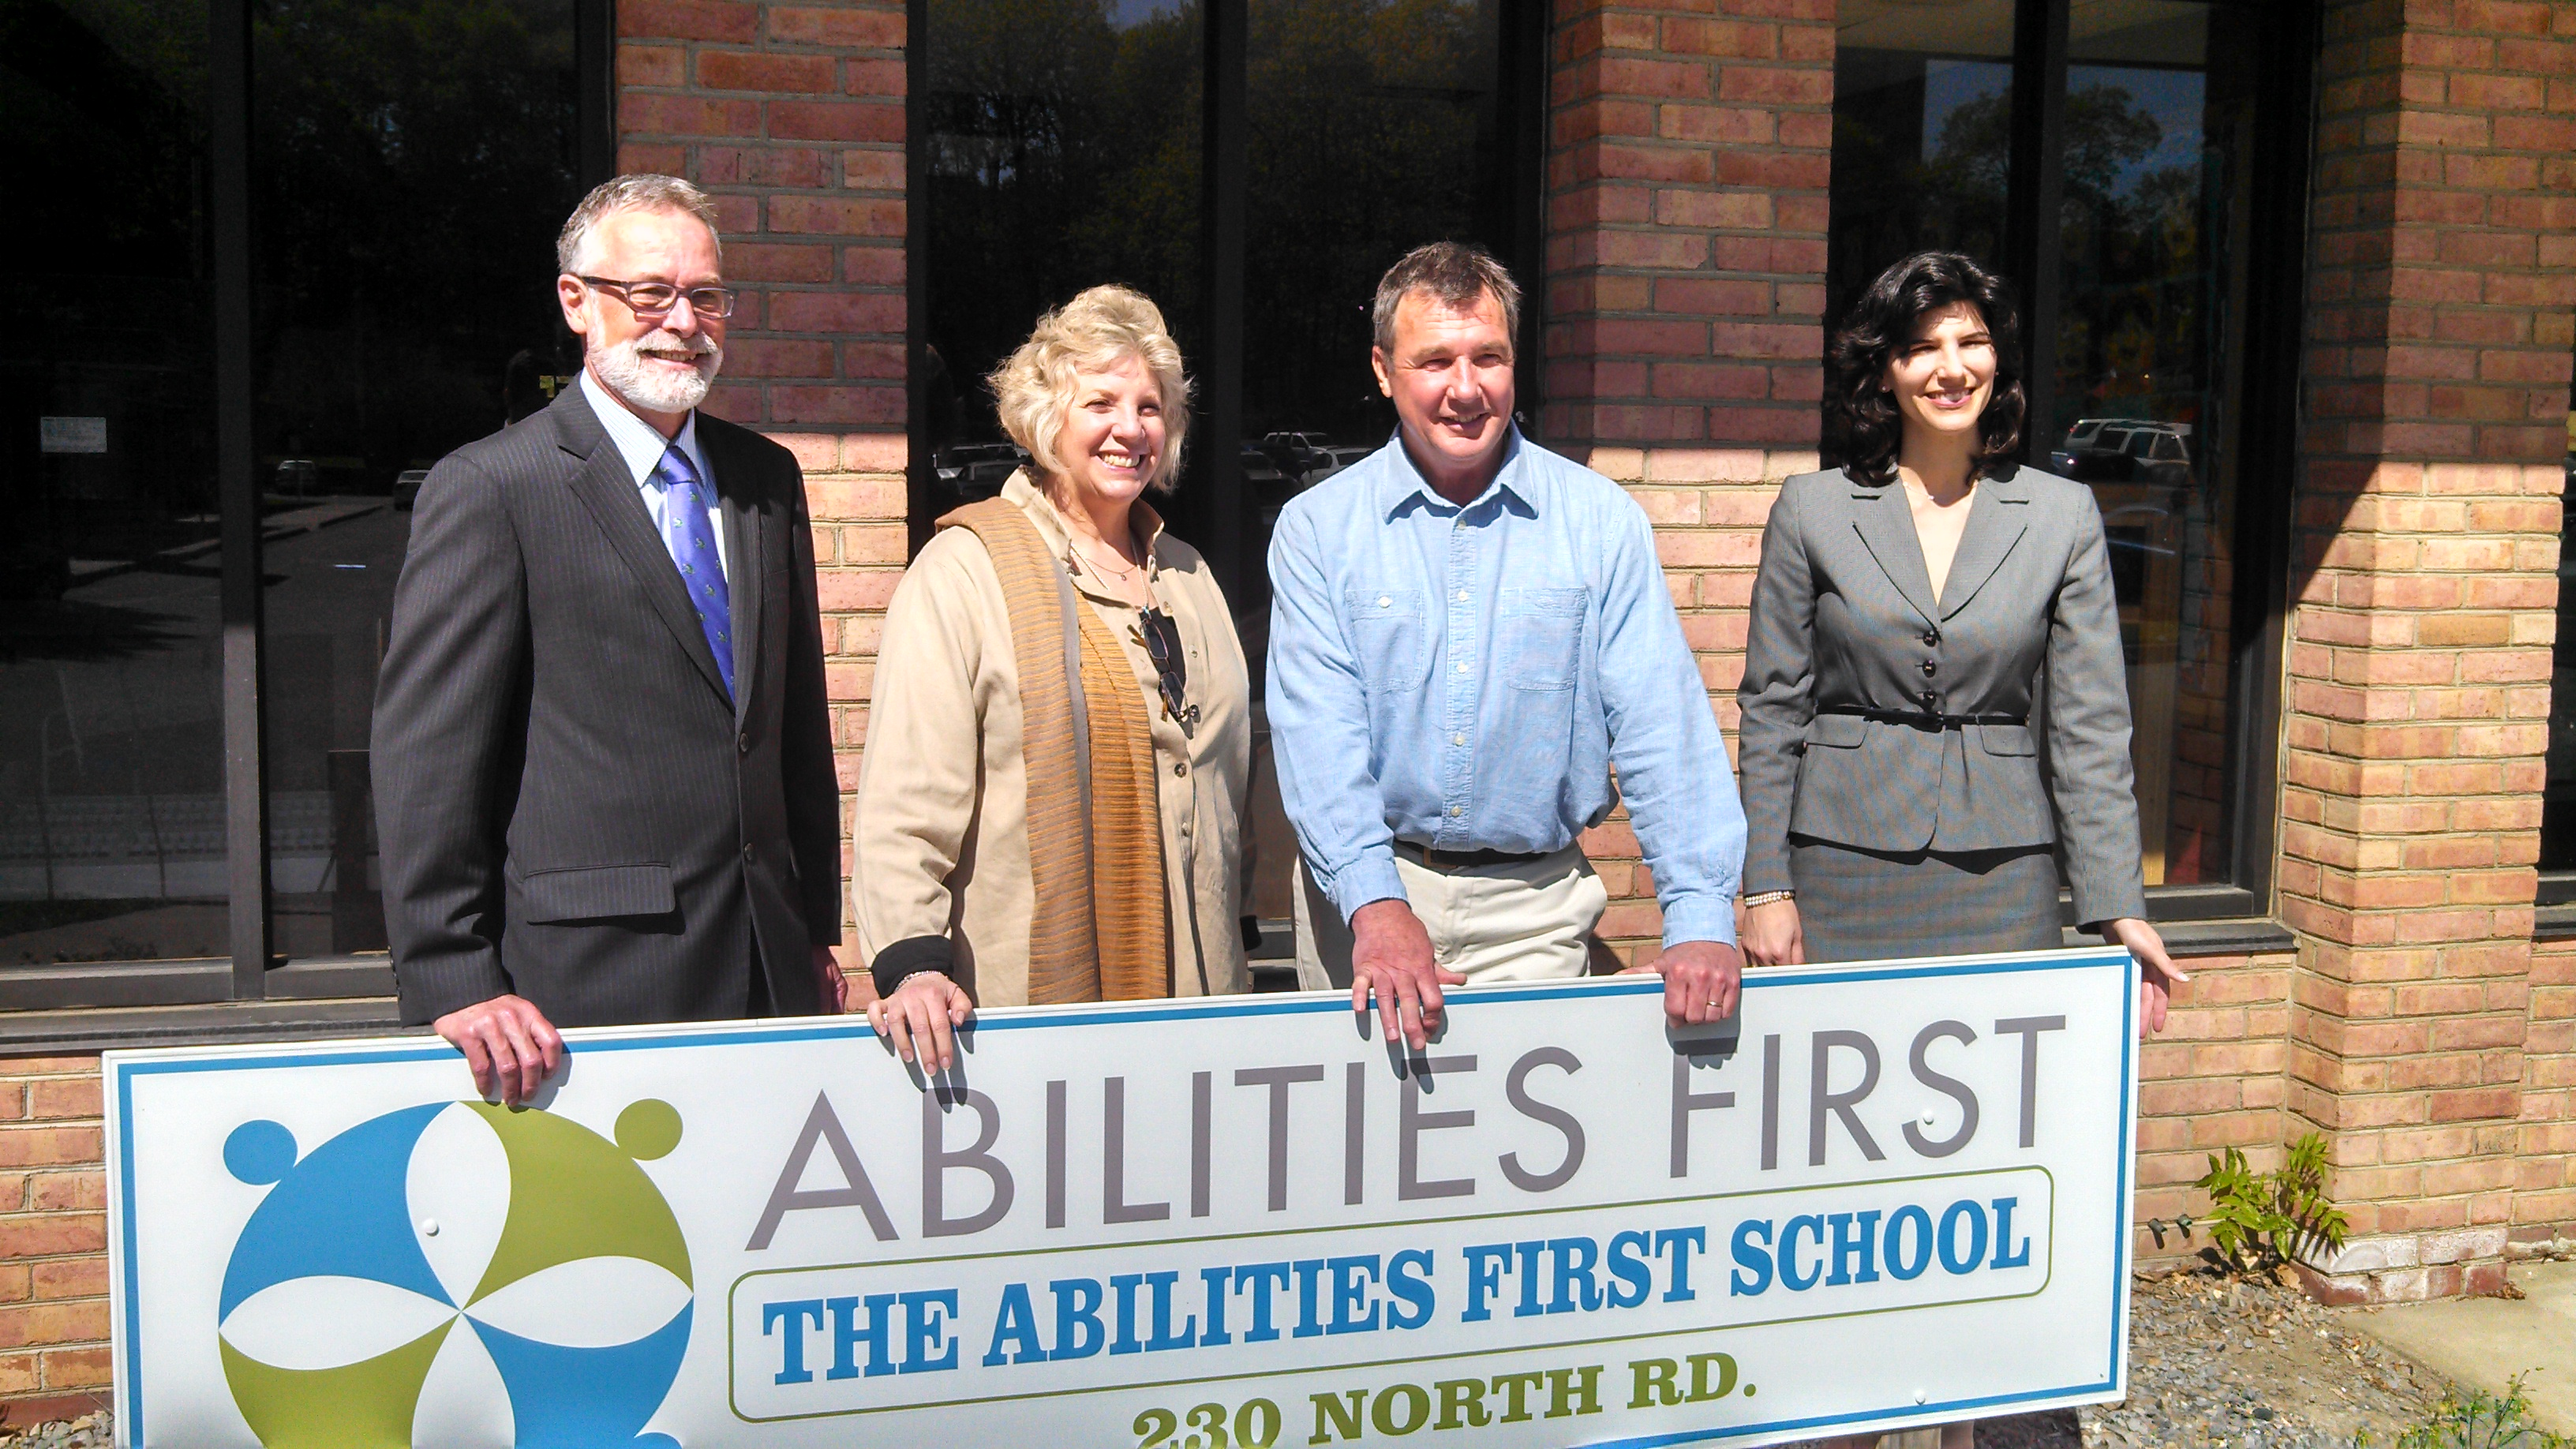 Abilities First School in Poughkeepsie